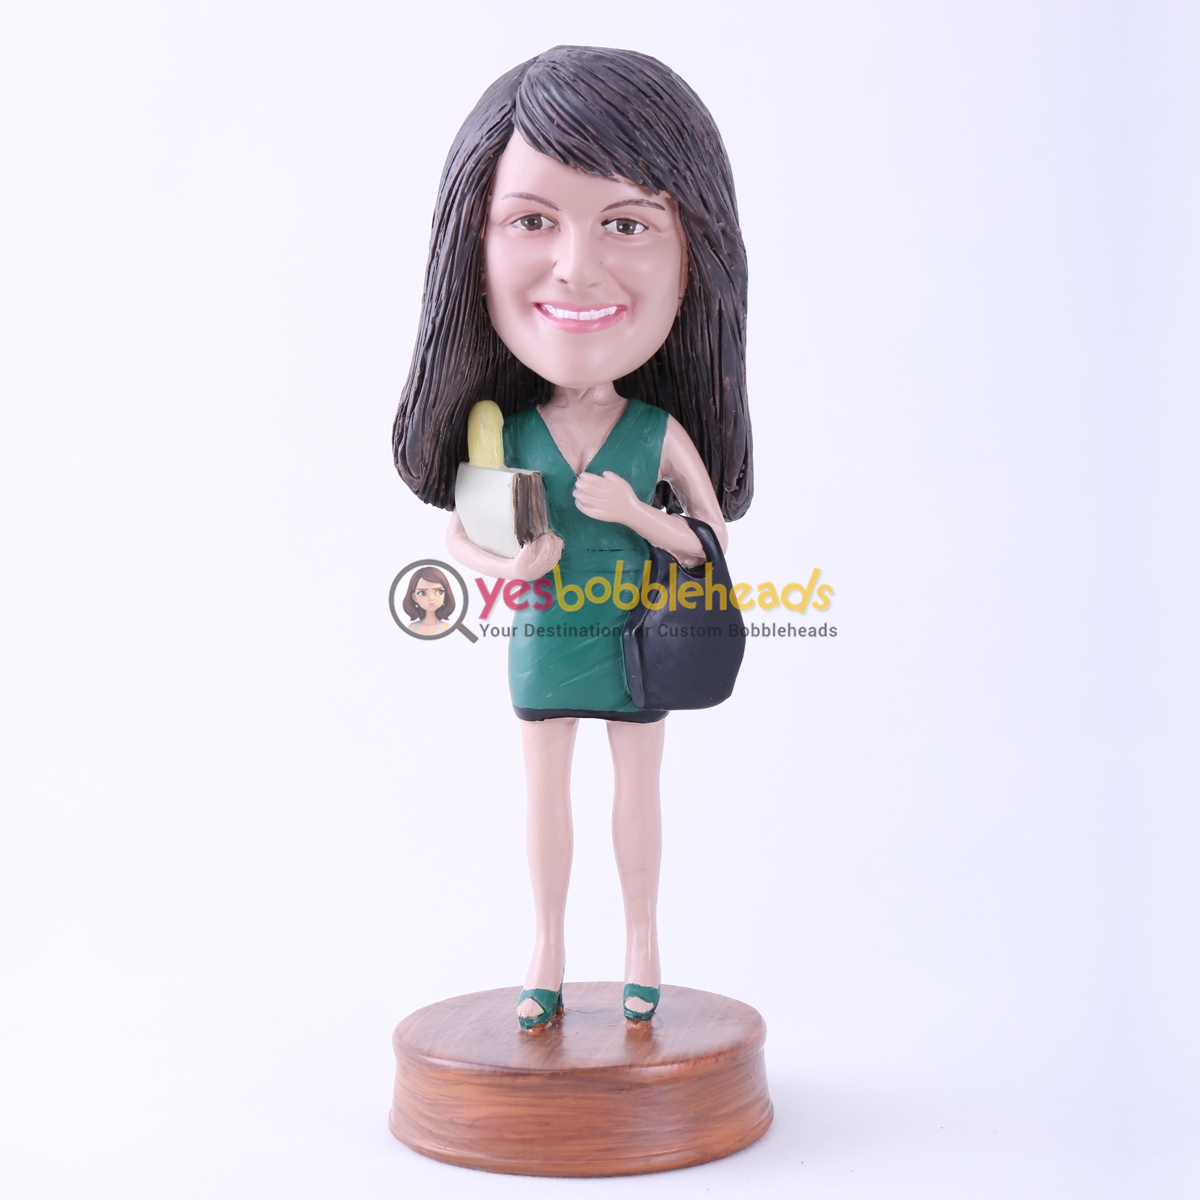 Picture of Custom Bobblehead Doll: Shopping Girl